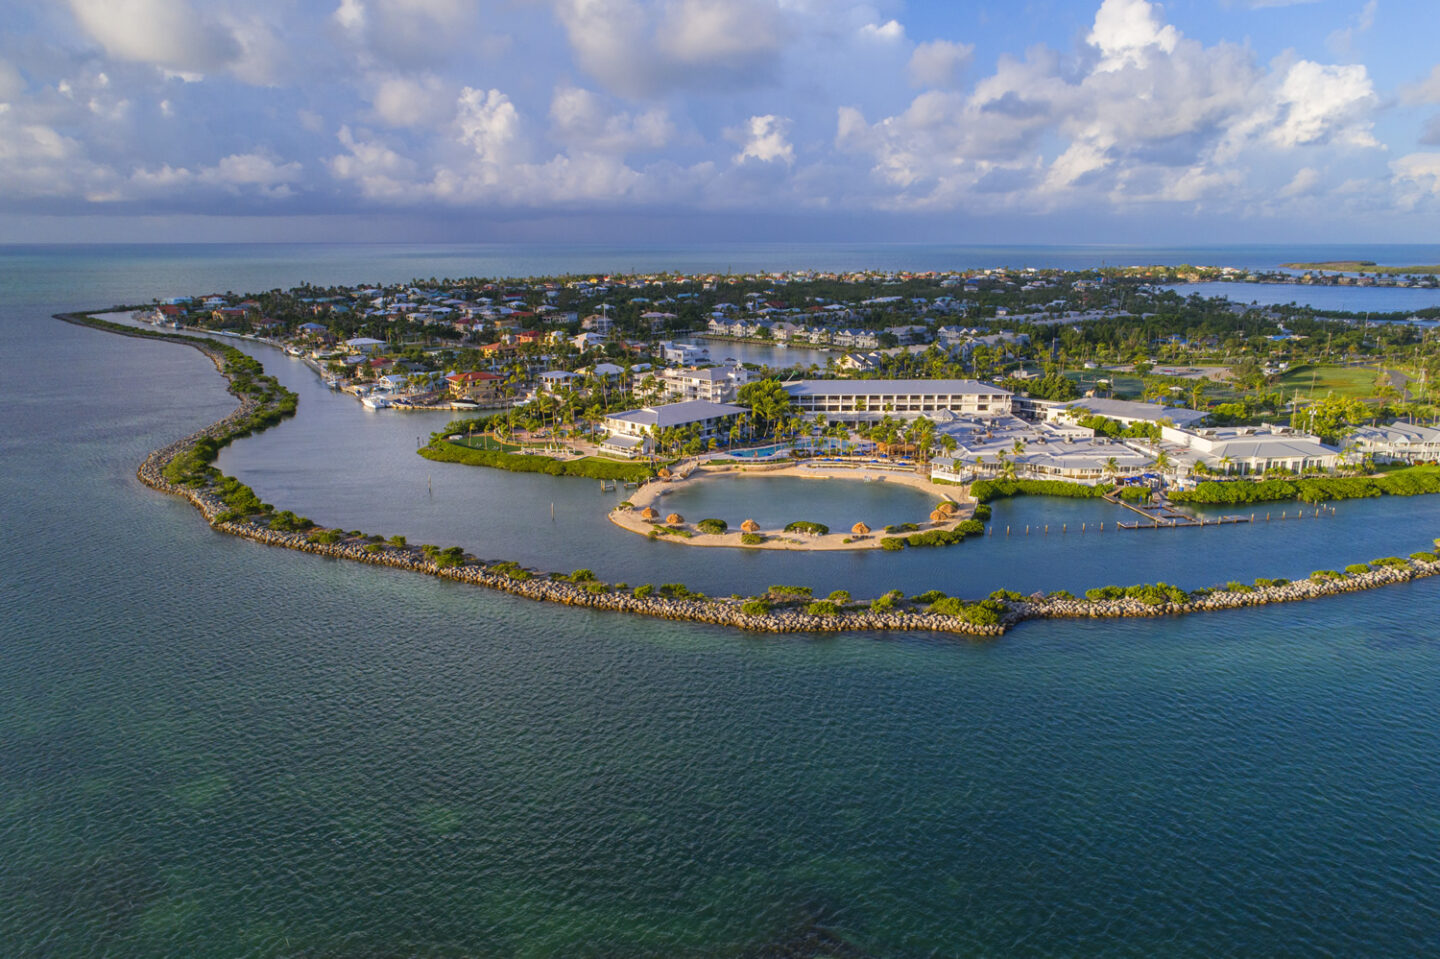 Hawks Cay Resort is the Best Family Resort in the Florida Keys